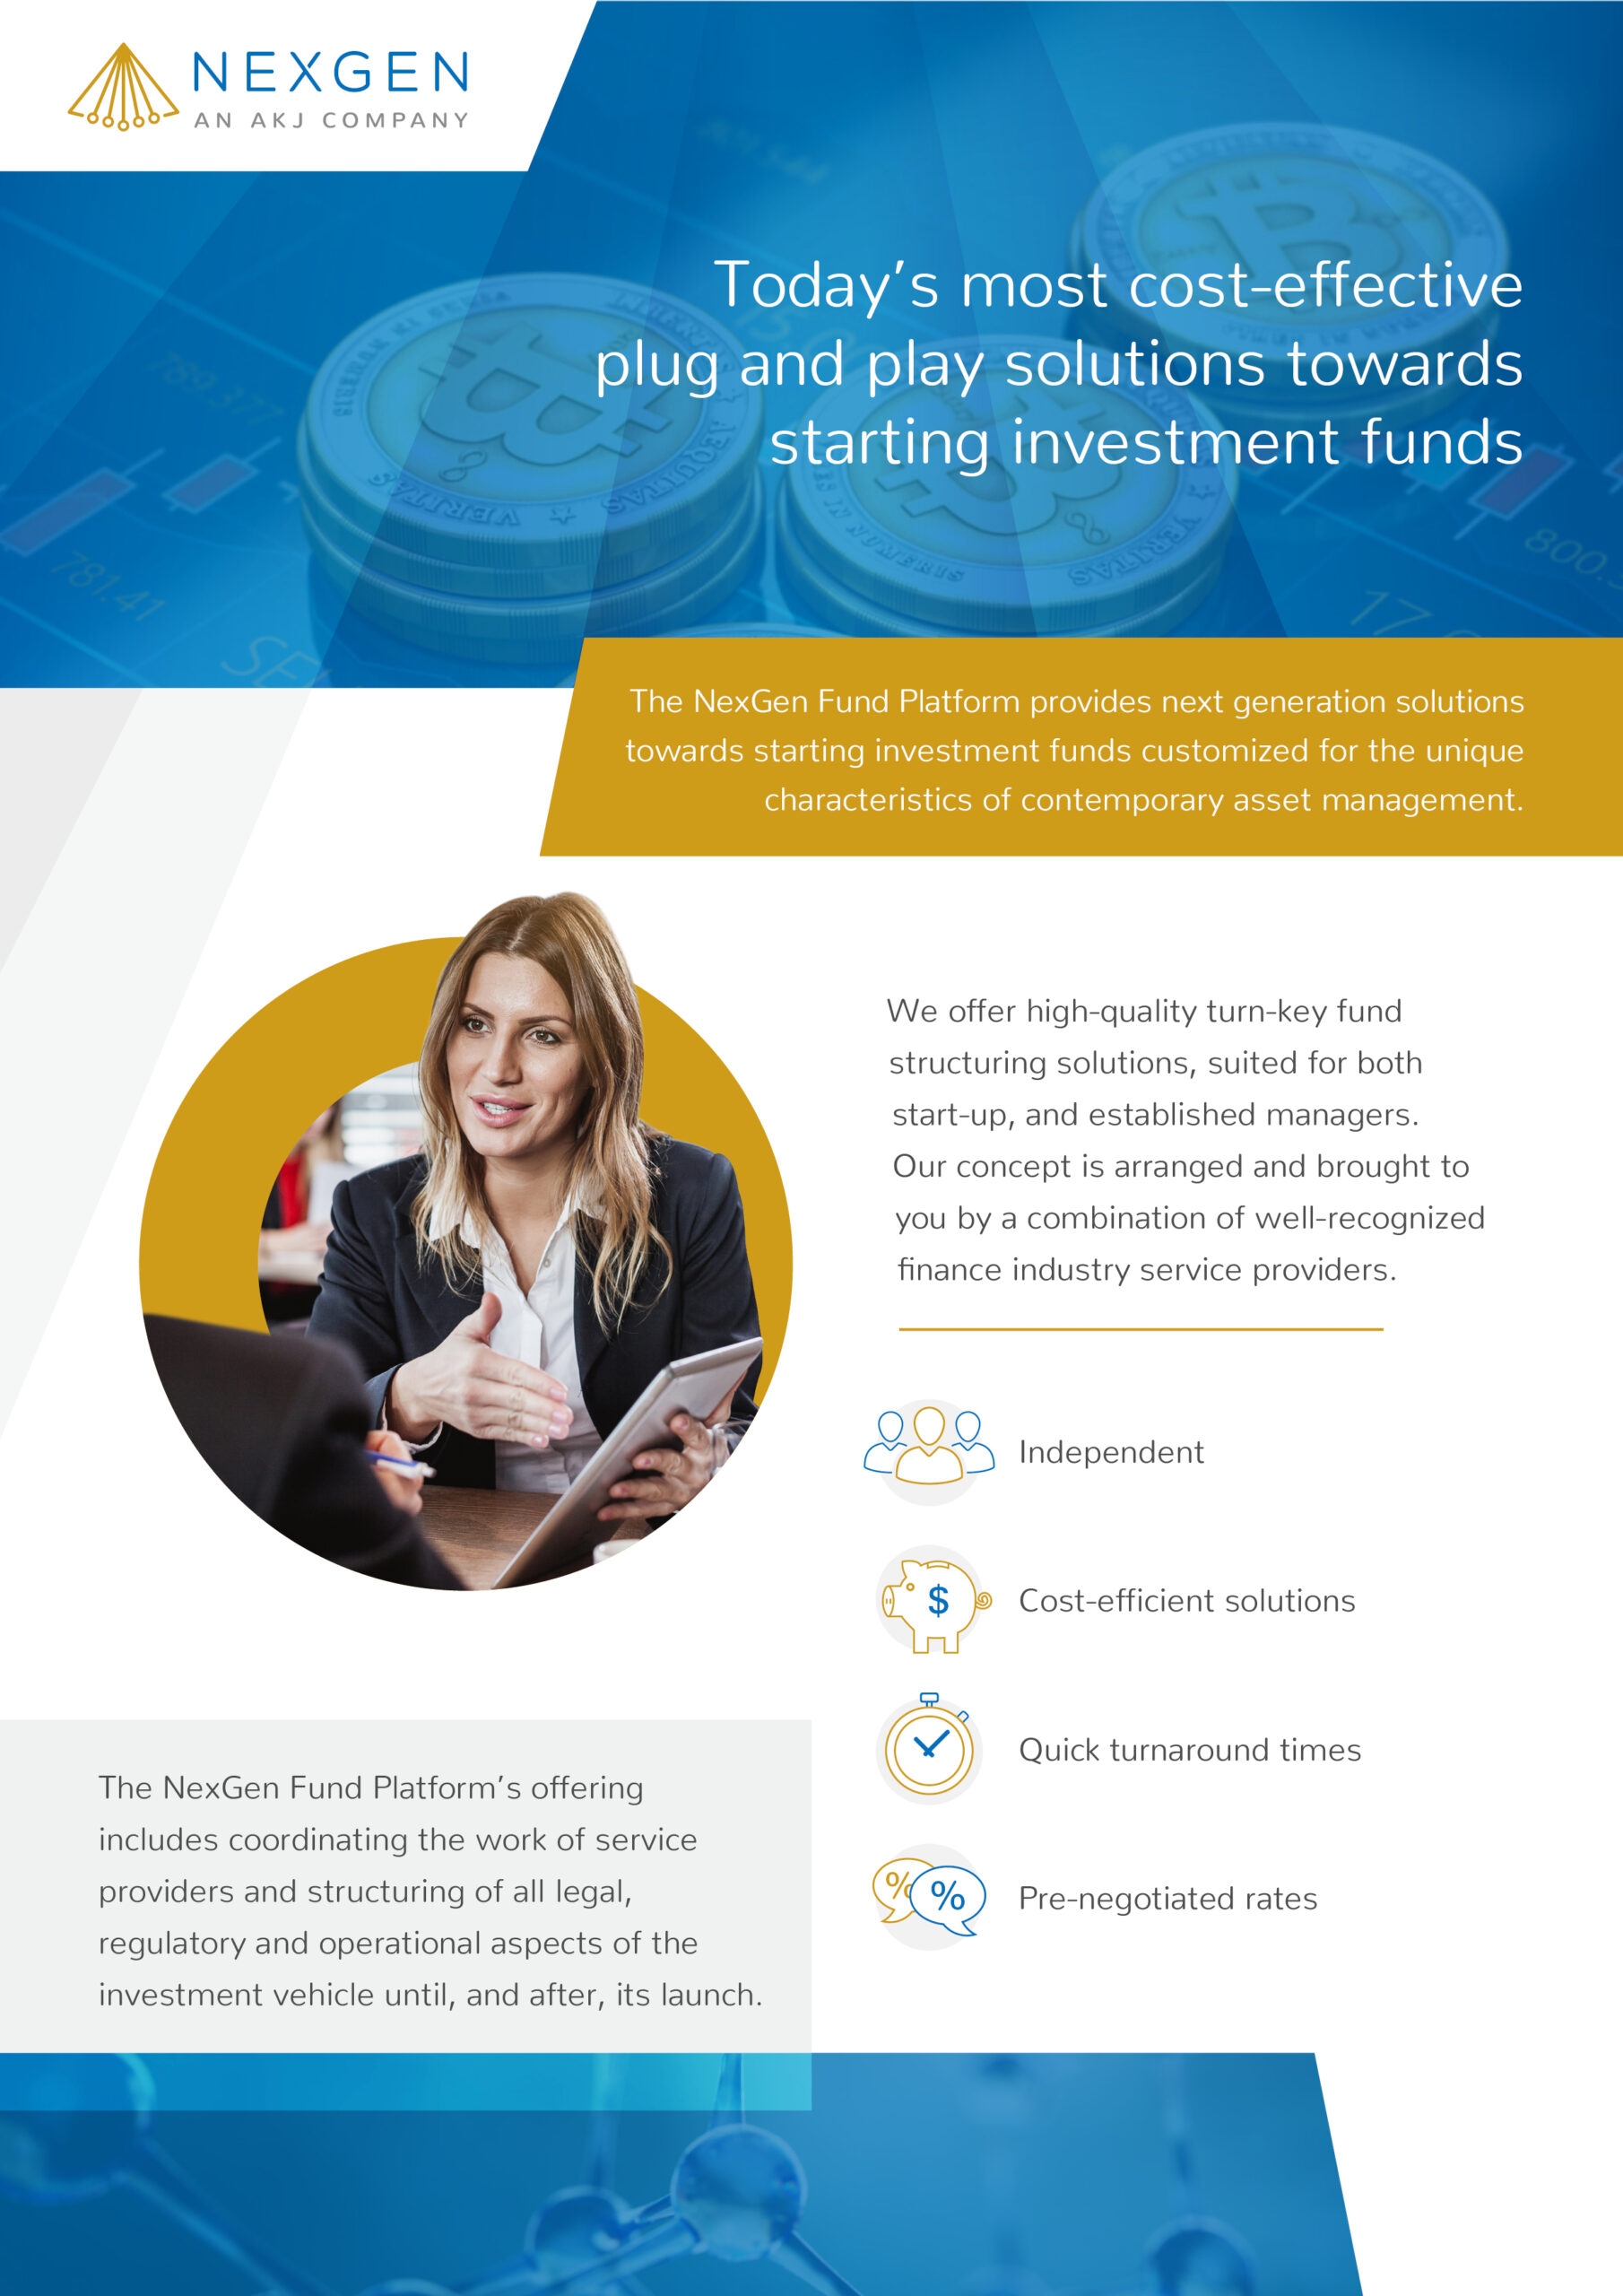 Today's most cost-effective plug and play solutions towards starting investment funds